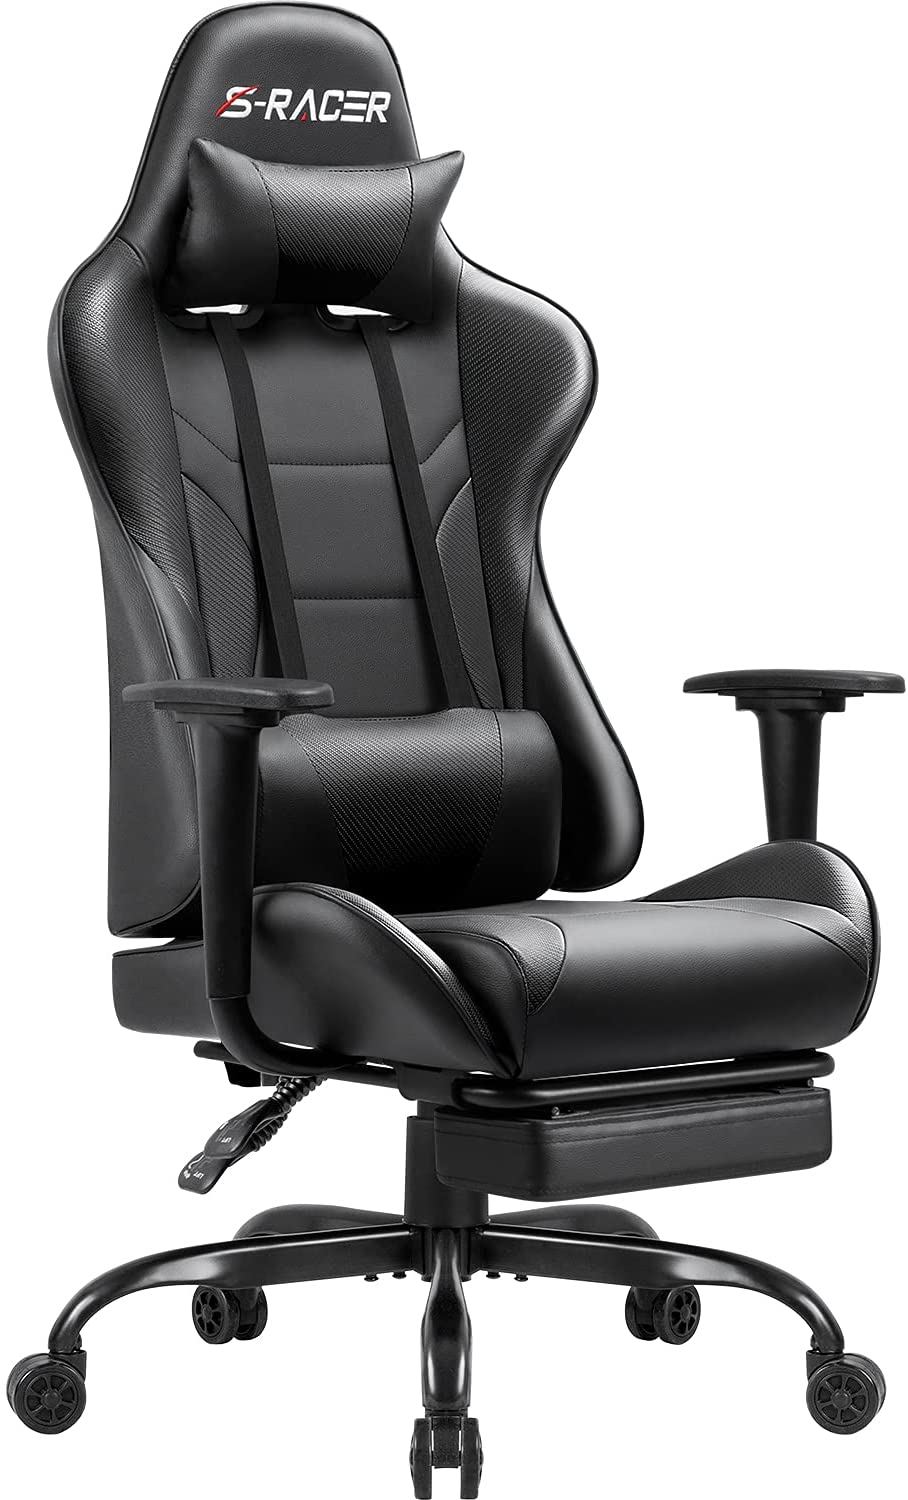 Homall Gaming Chair Computer Sale Special Price Selling and selling Ergonomic w Office Desk